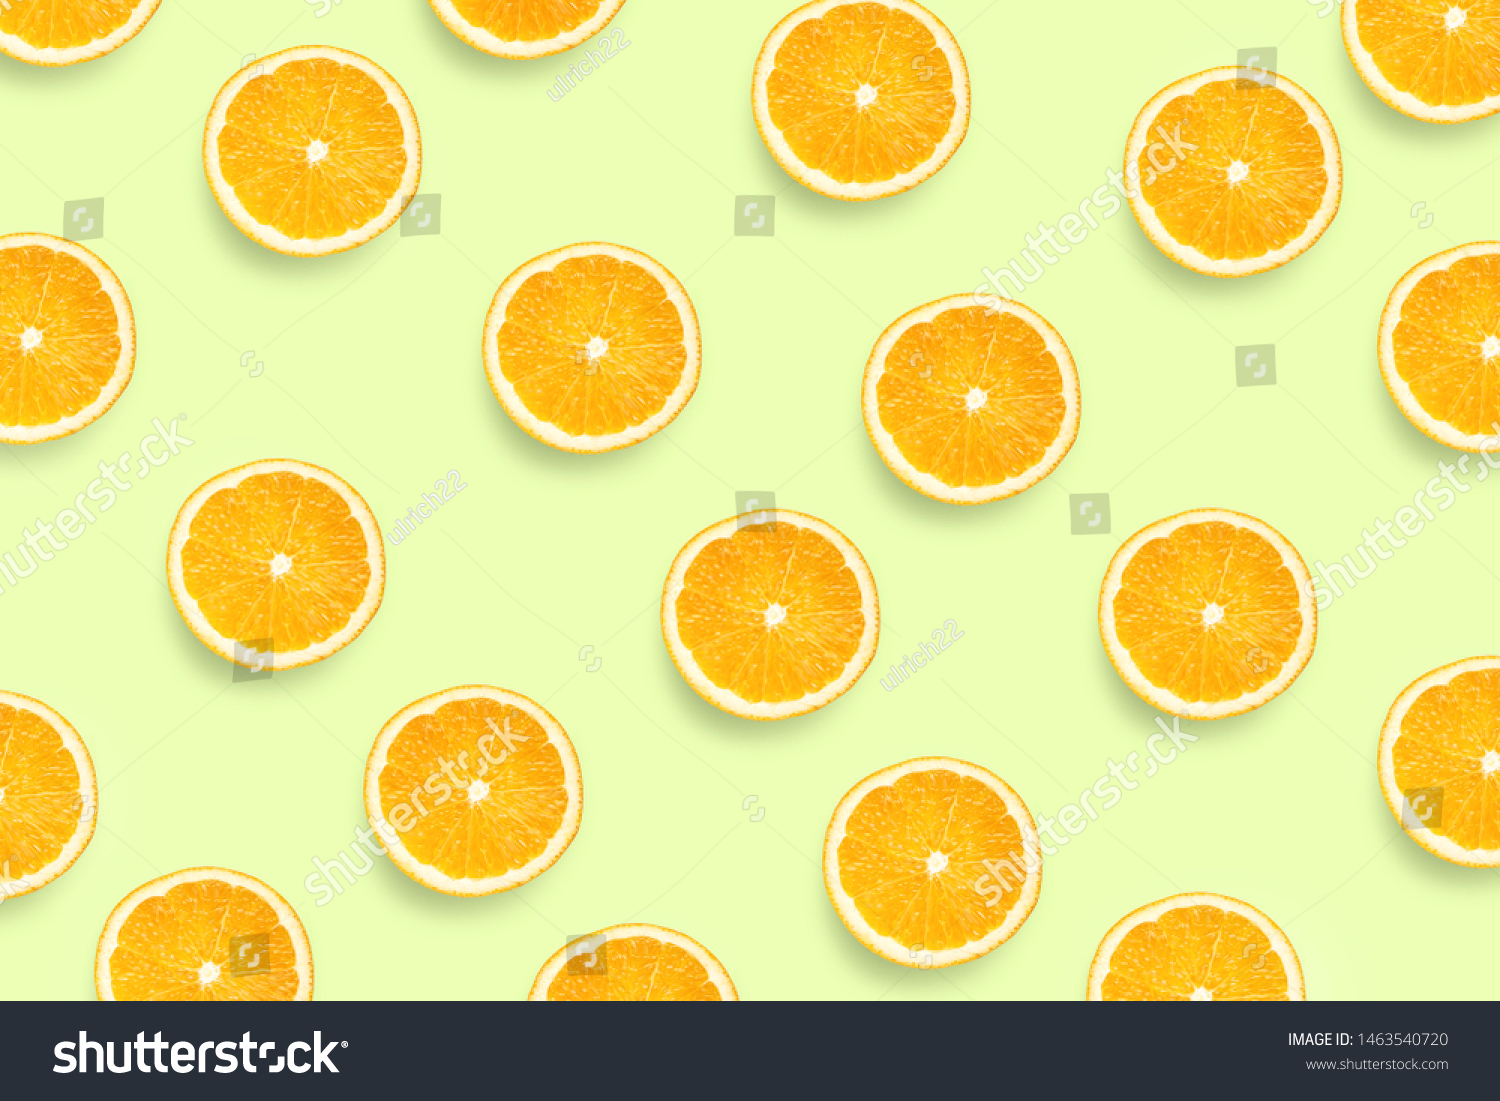 Colorful fruit pattern of fresh orange slices on colored background. Orange slices top view.